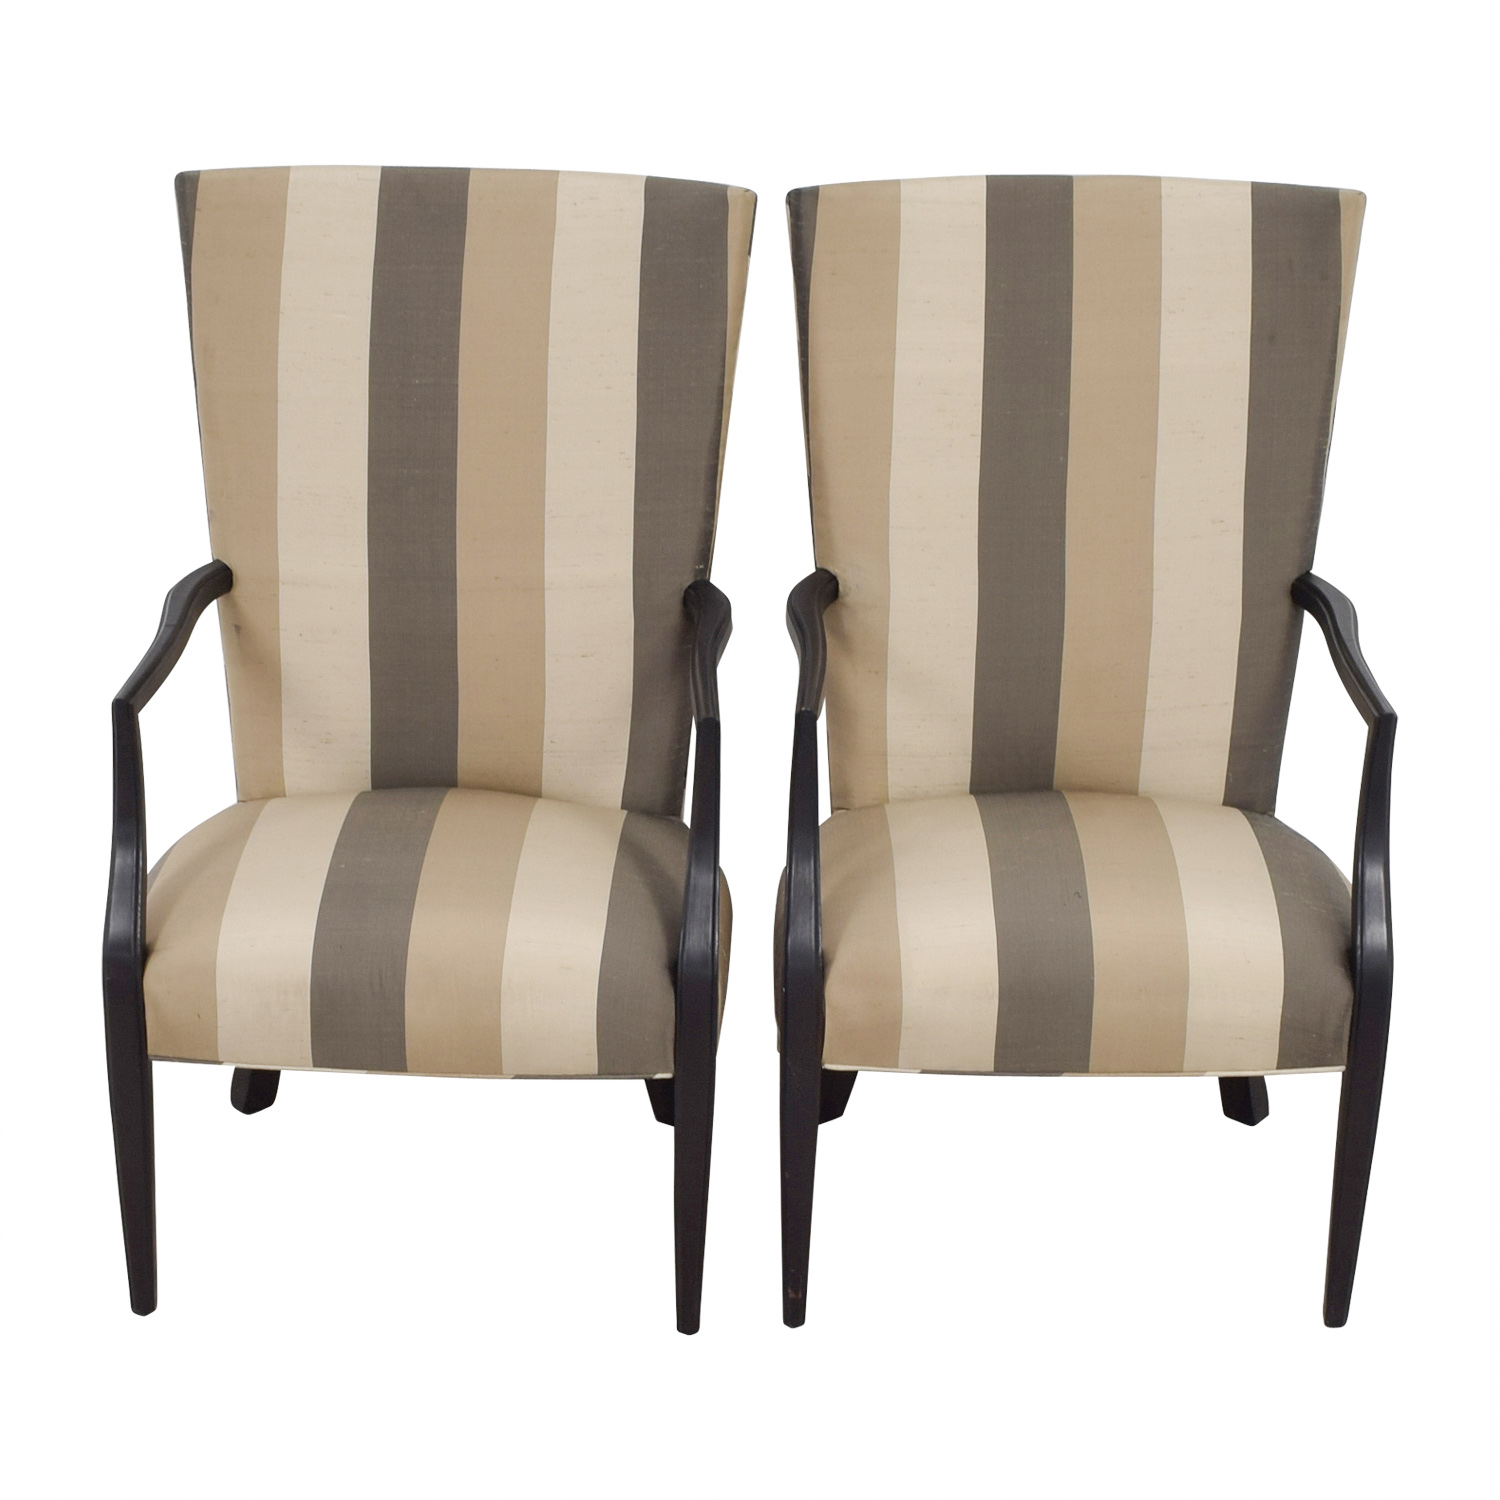 Hickory Chair Furniture Co. Vintage Neutral Stripe Chairs / Chairs